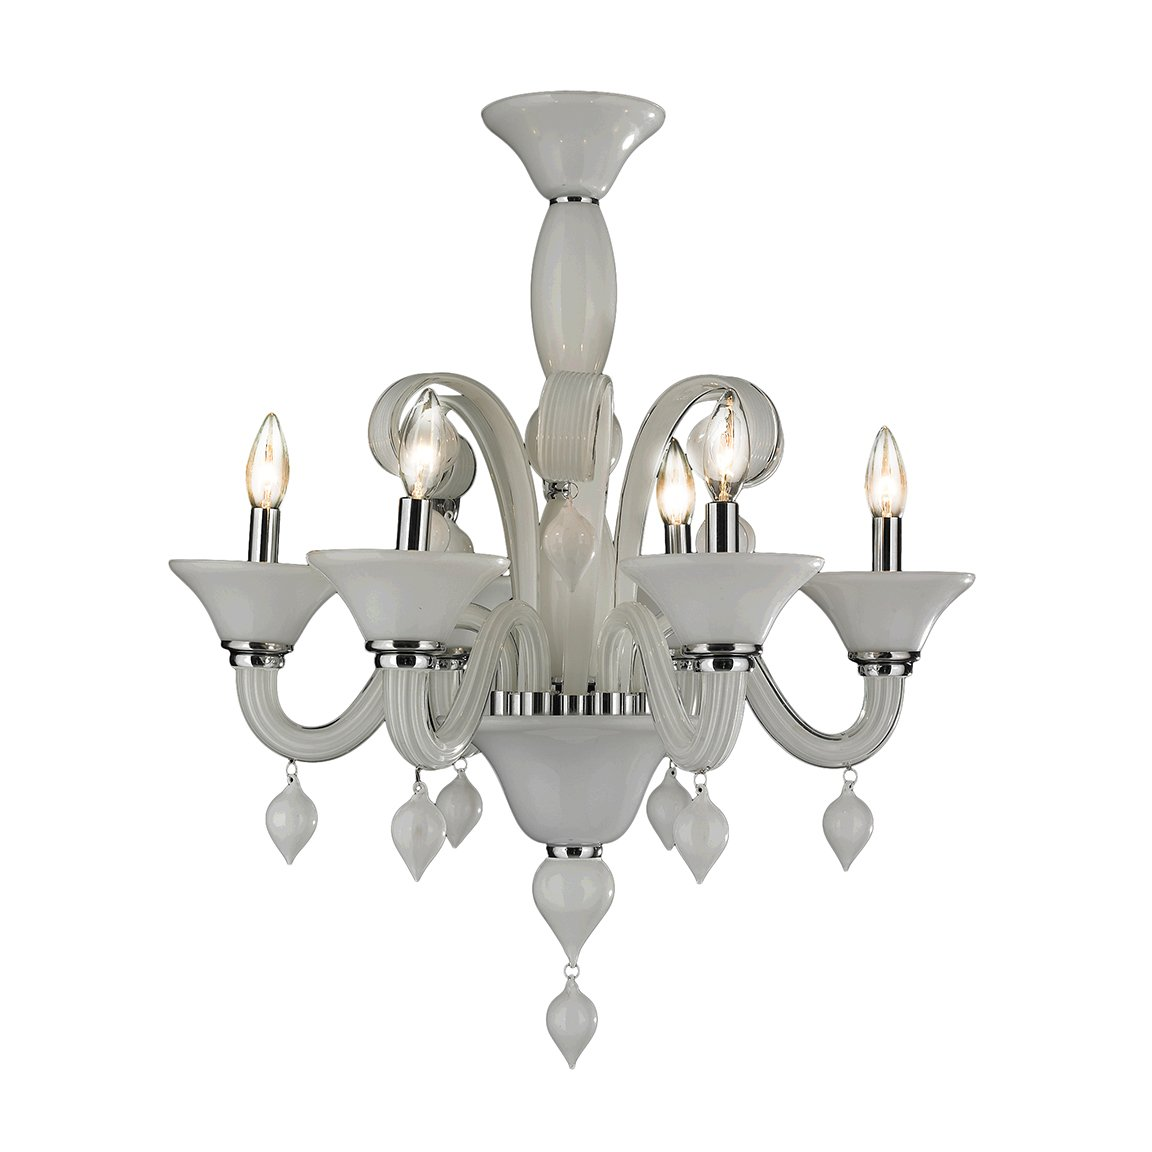 Worldwide Lighting Murano Collection 6 Light Blown Glass in White Finish Venetian Style Chandelier 23'' D x 27'' H Medium